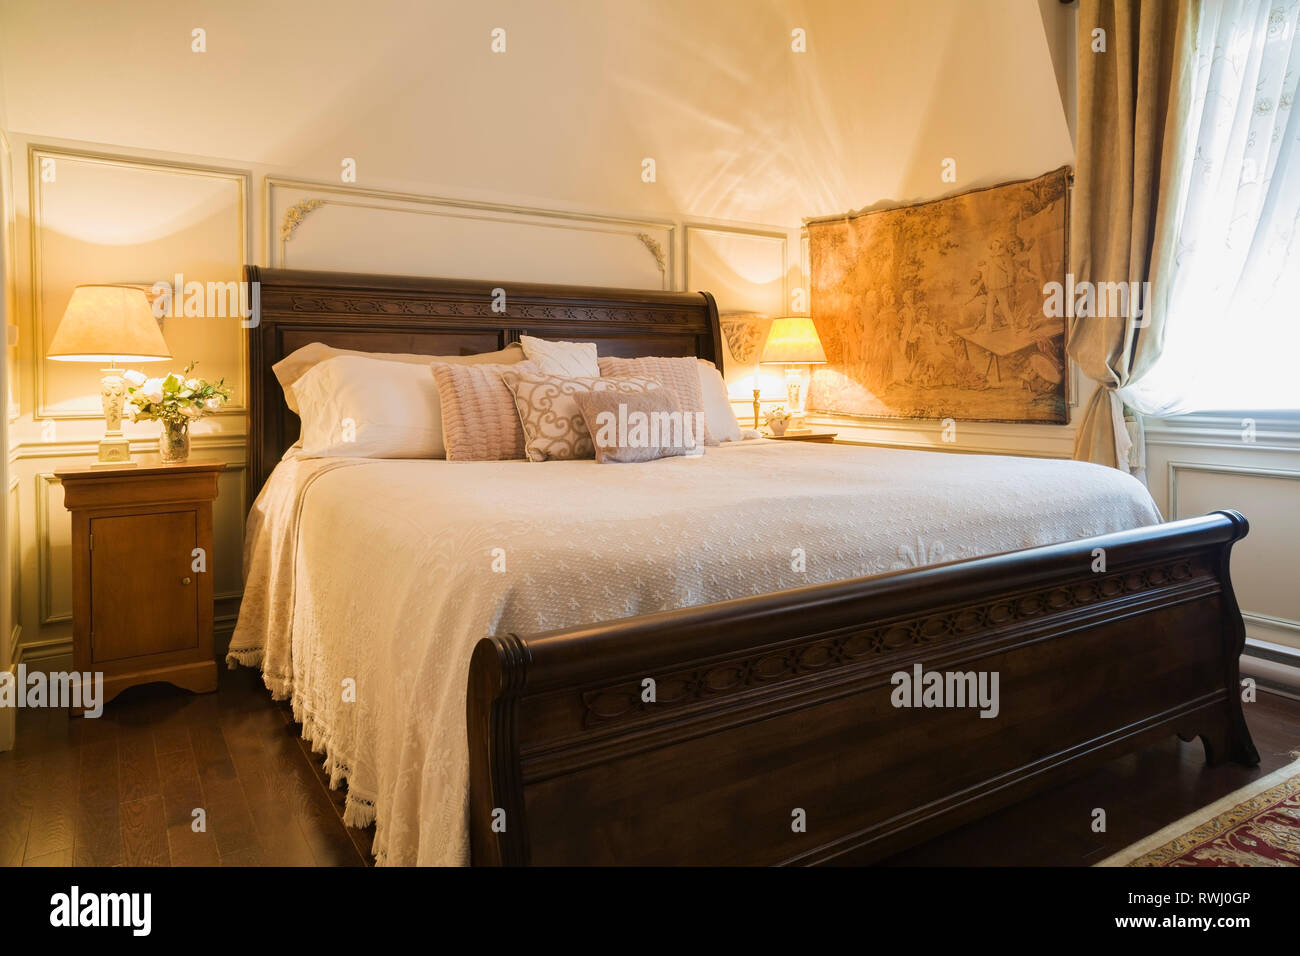 Amish Made King Size Bed With Wooden Headboard Footboard In The Master Bedroom On The Upstairs